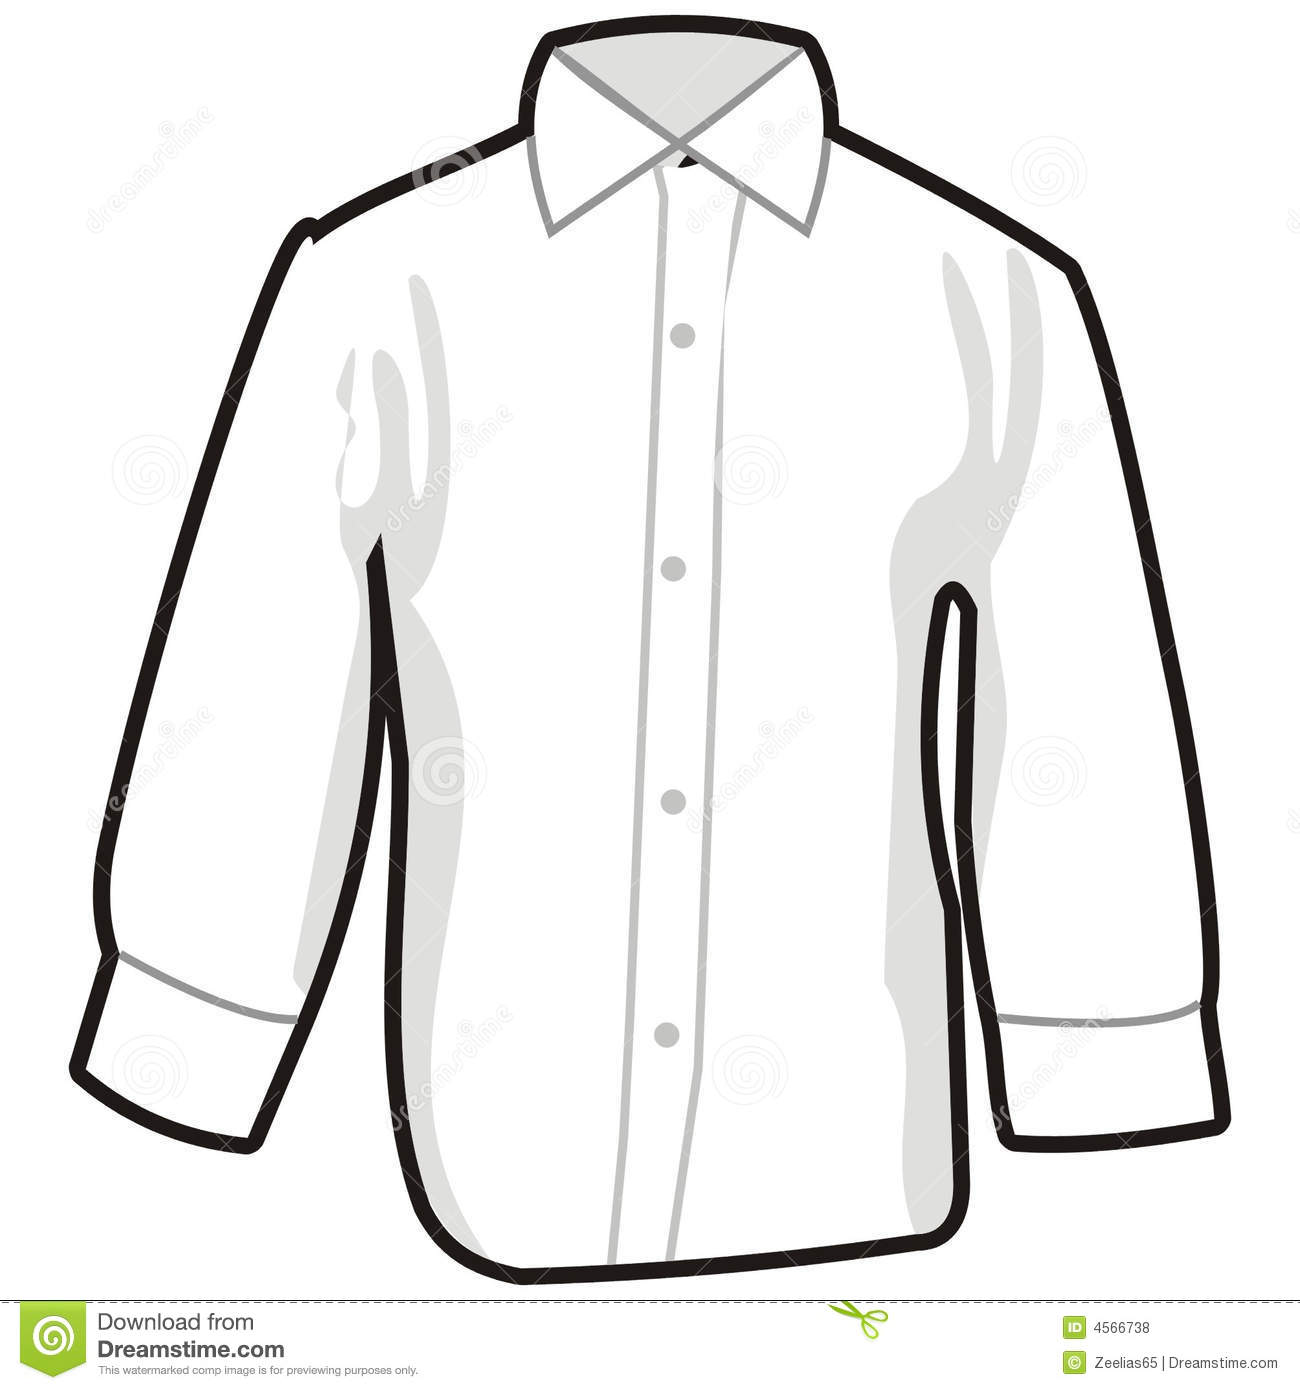 ǔ�性服イラストレーション Gm97914064 5198772 further Shirt By Greggrossmeier moreover Dress Shirt Front Placket Types furthermore Csp blouses in addition 18334744 Illuminati Eye Of Providence. on dress shirts drawing